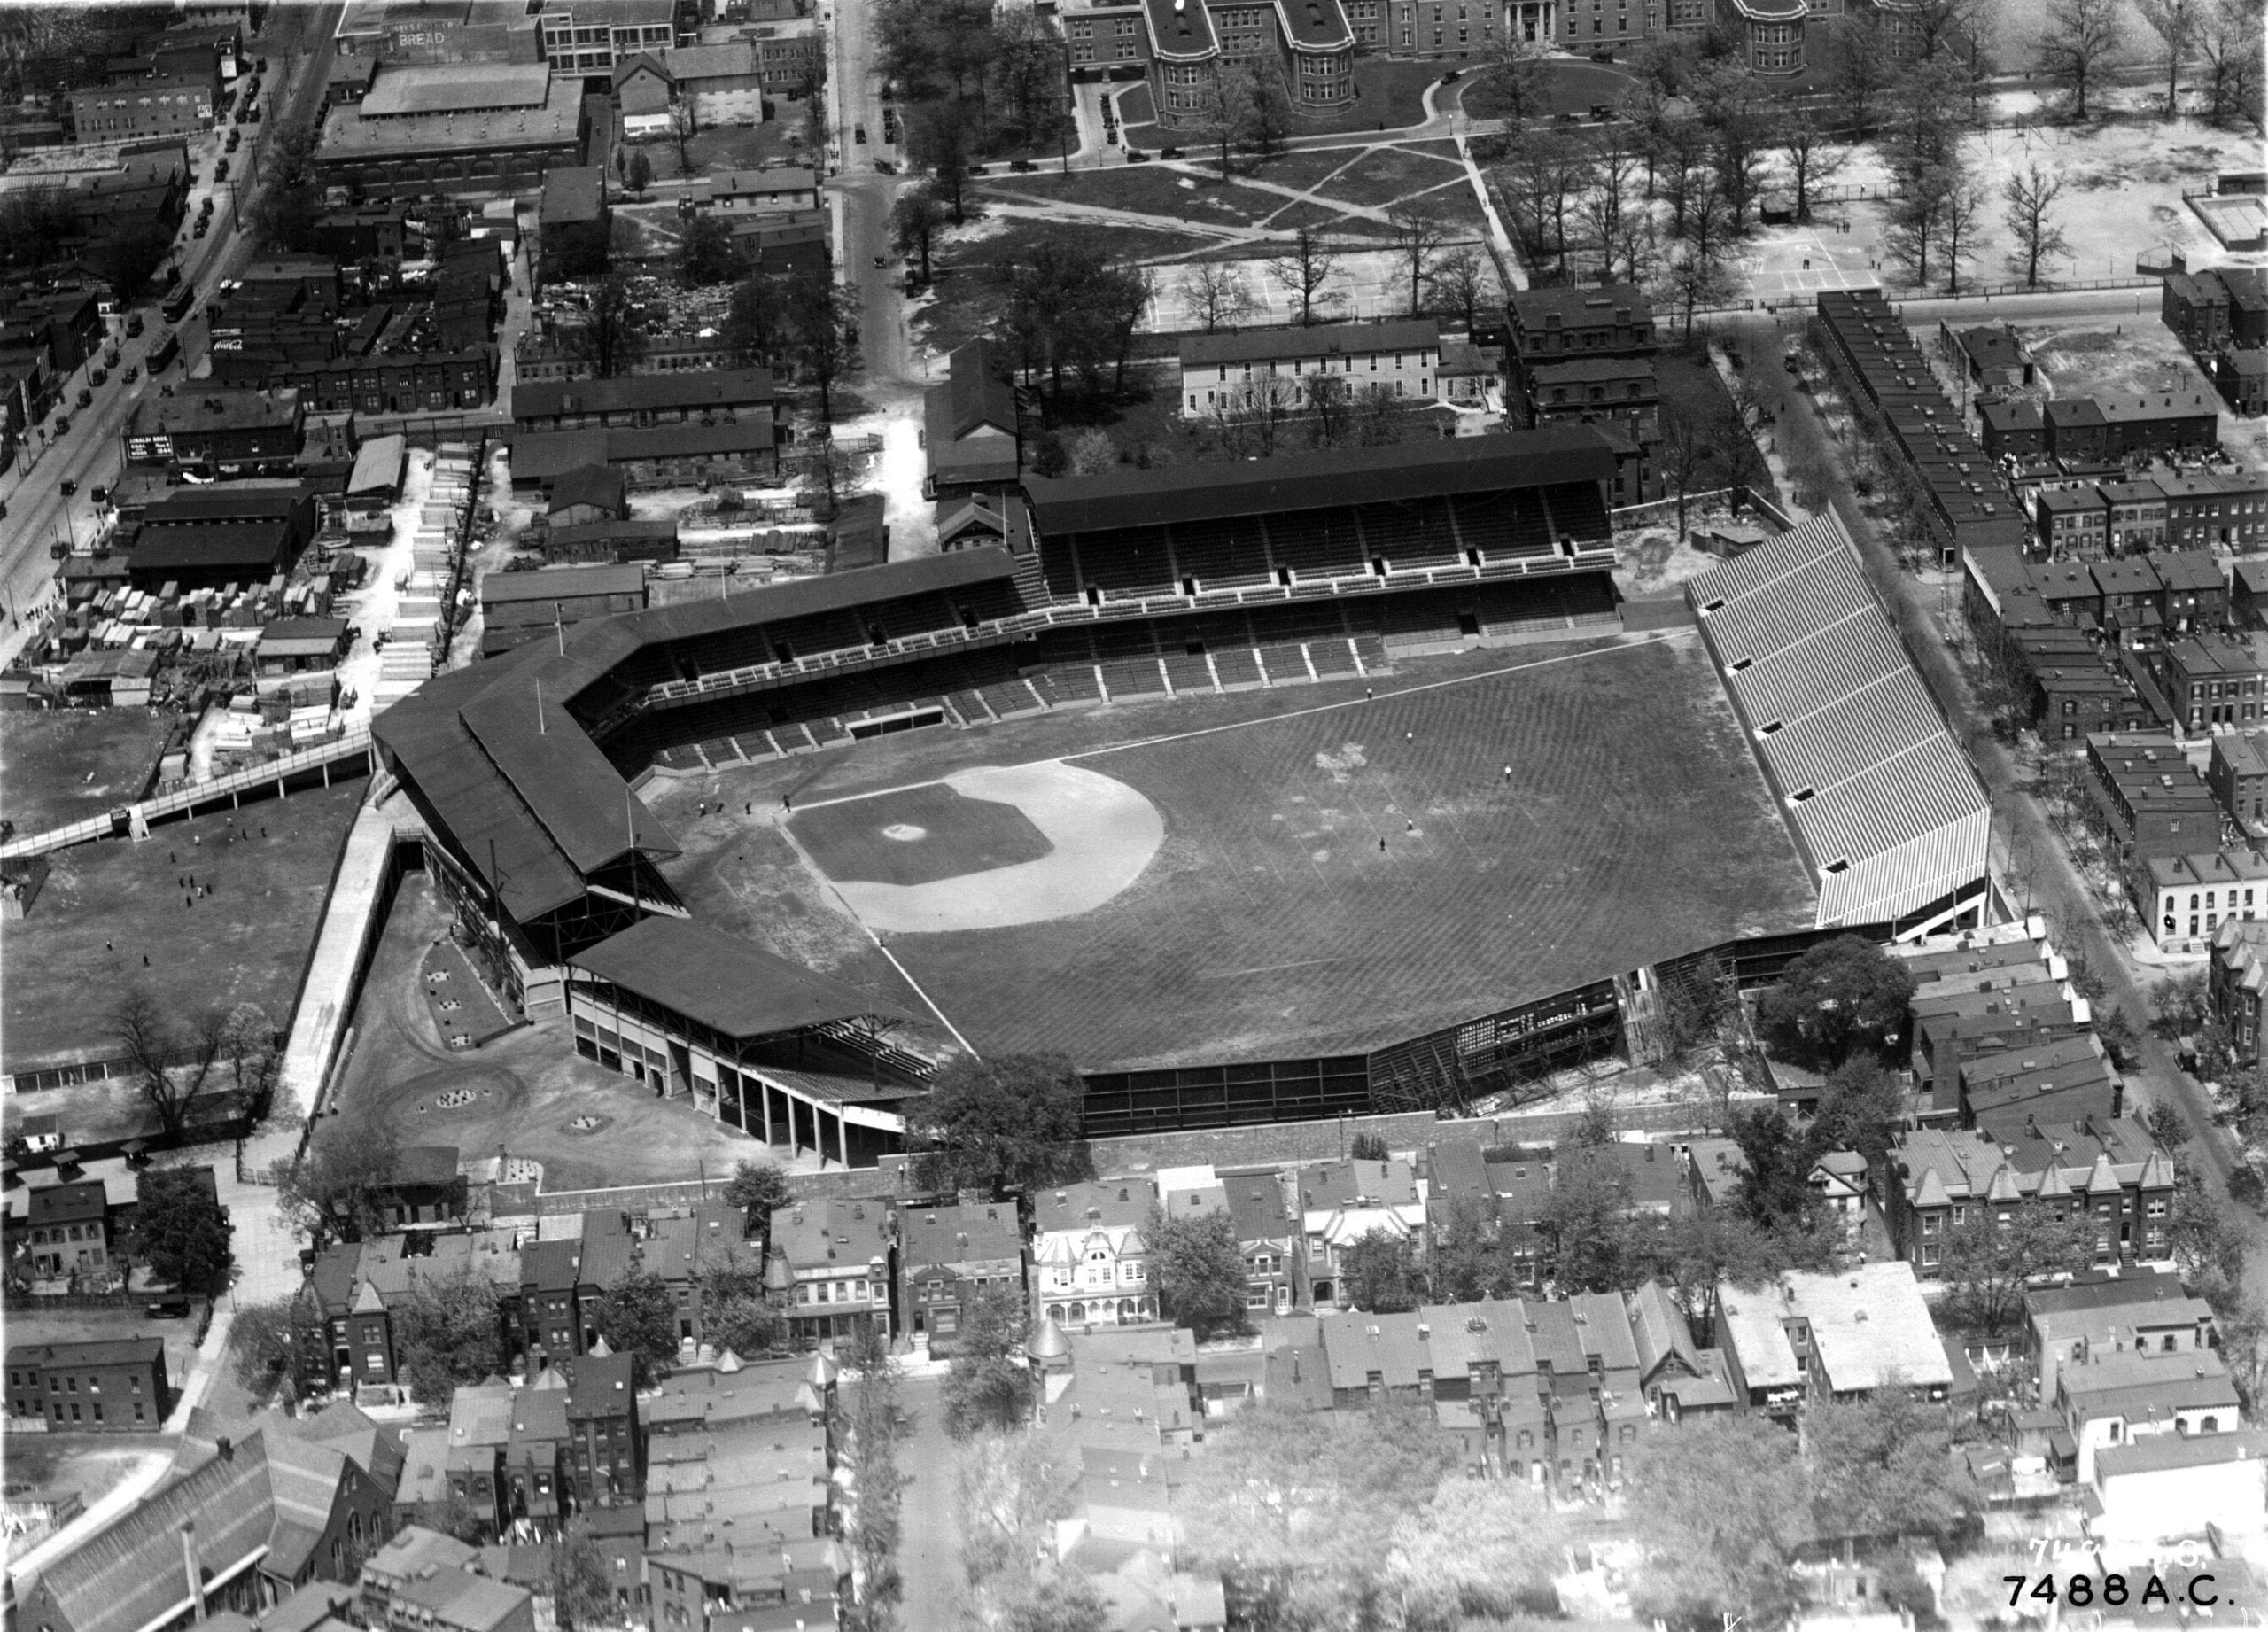 Detailed Aerial Photo of Griffith Stadium and Neighborhood